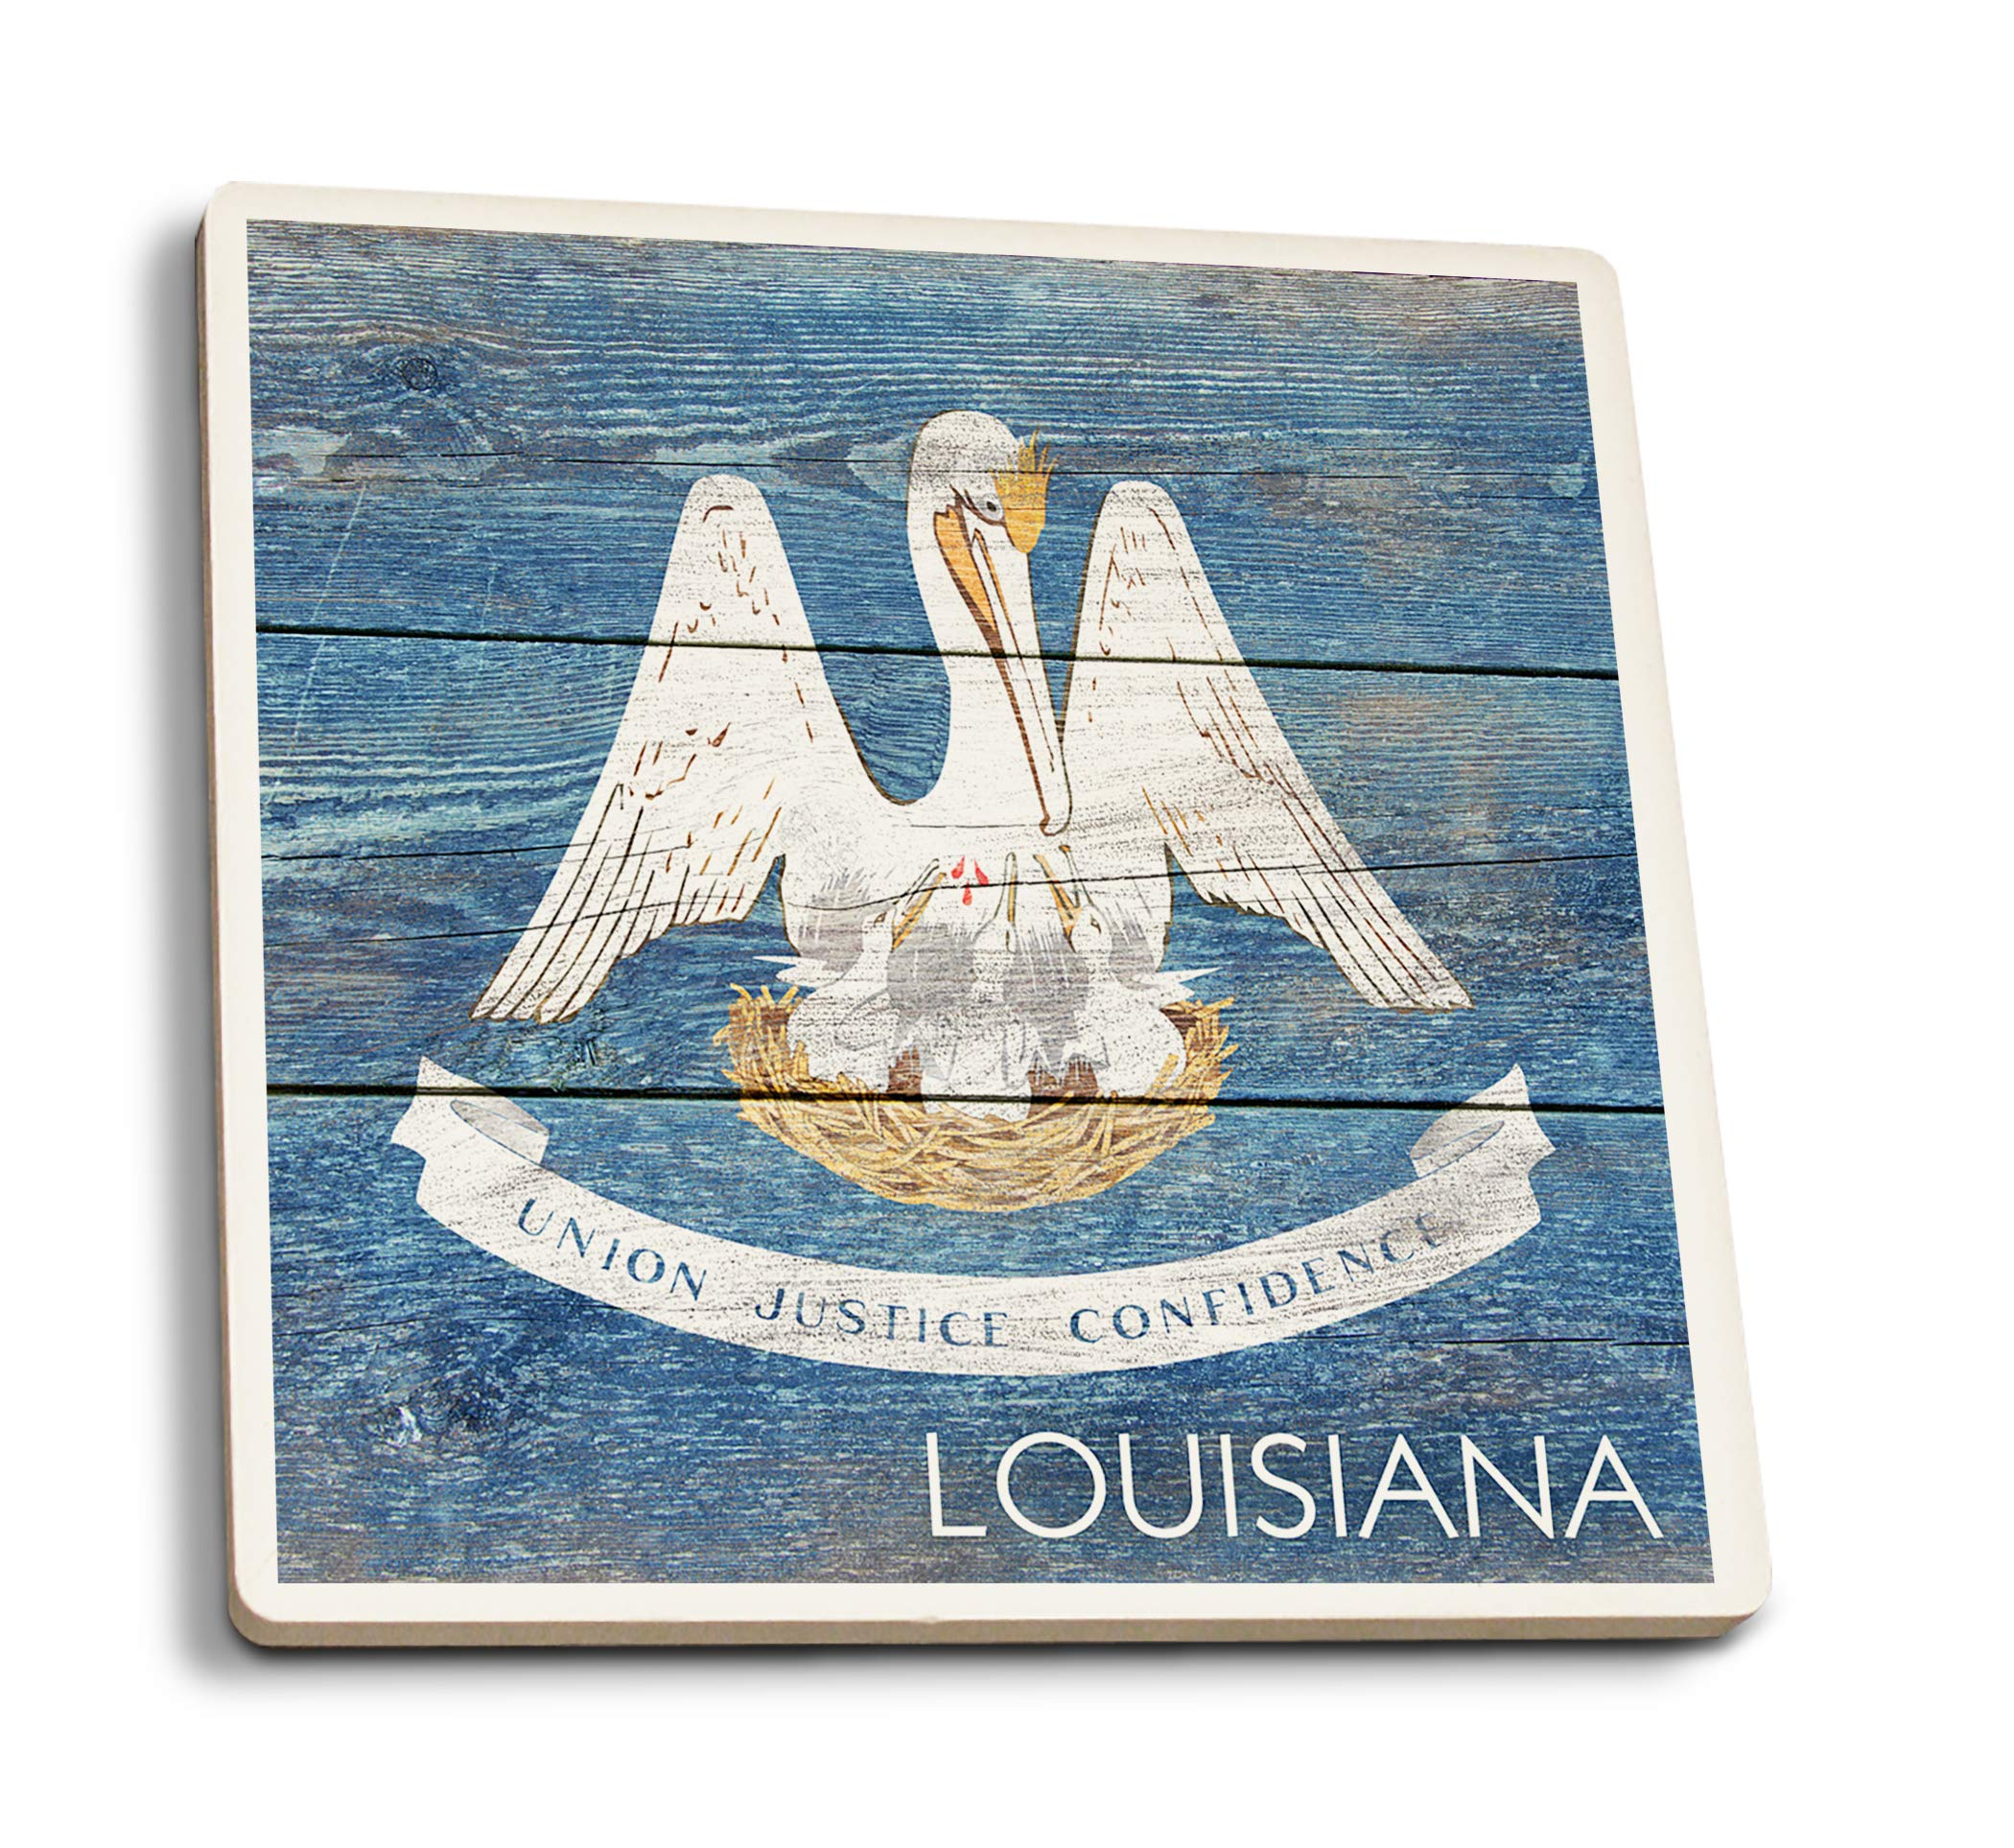 Lantern Press Rustic Louisiana State Flag (Set of 4 Ceramic Coasters - Cork-Backed, Absorbent)